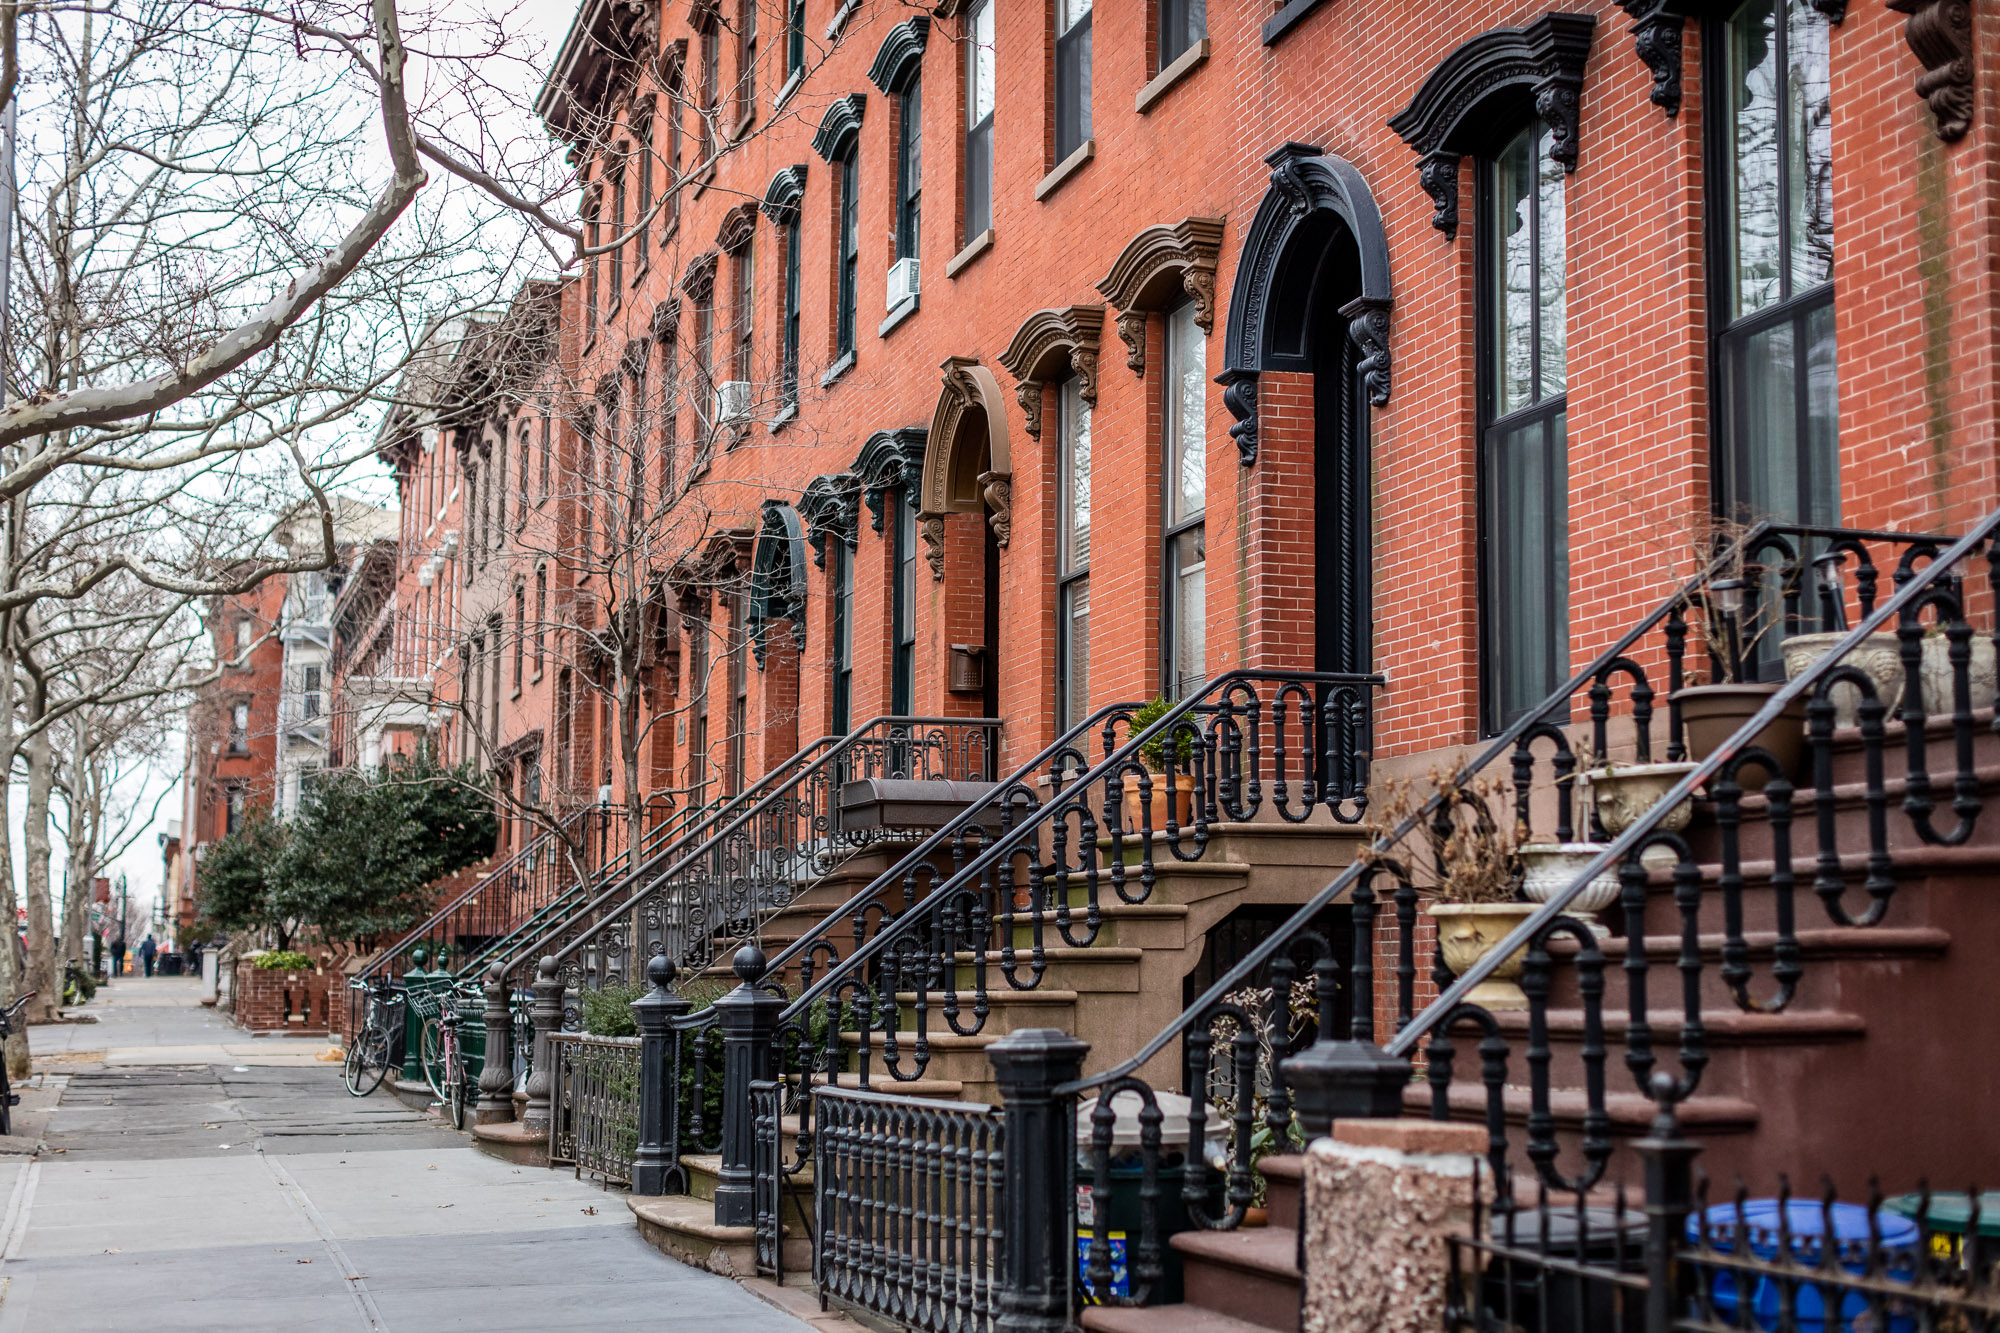 A row of red brick townhouses with wrought iron railings and stoops.